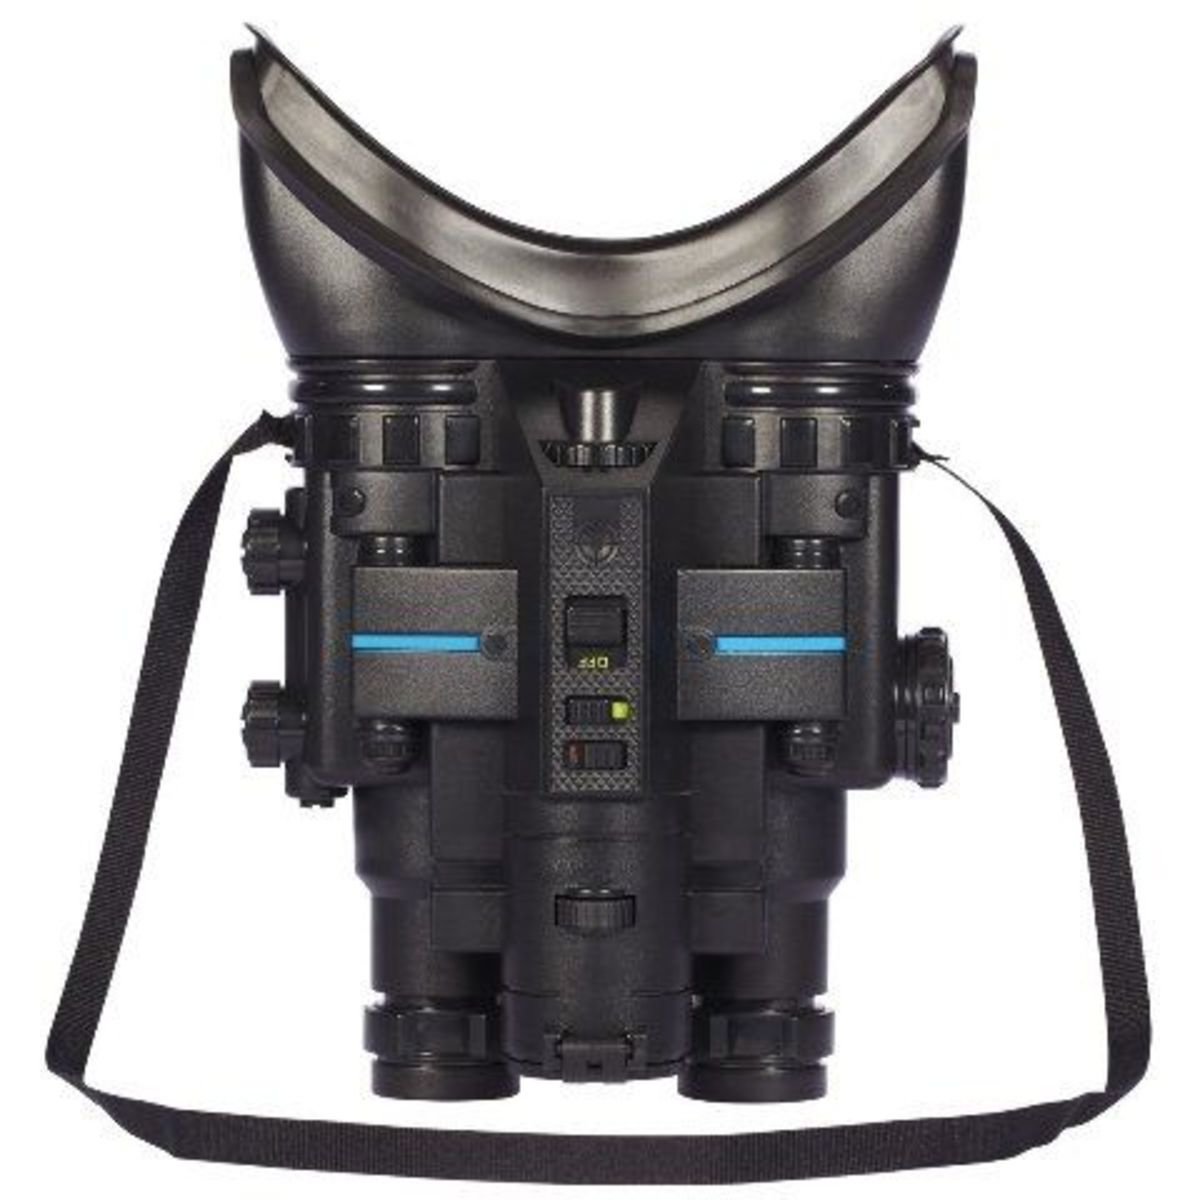 Spy Net Night Vision Infrared Stealth Binoculars: top view